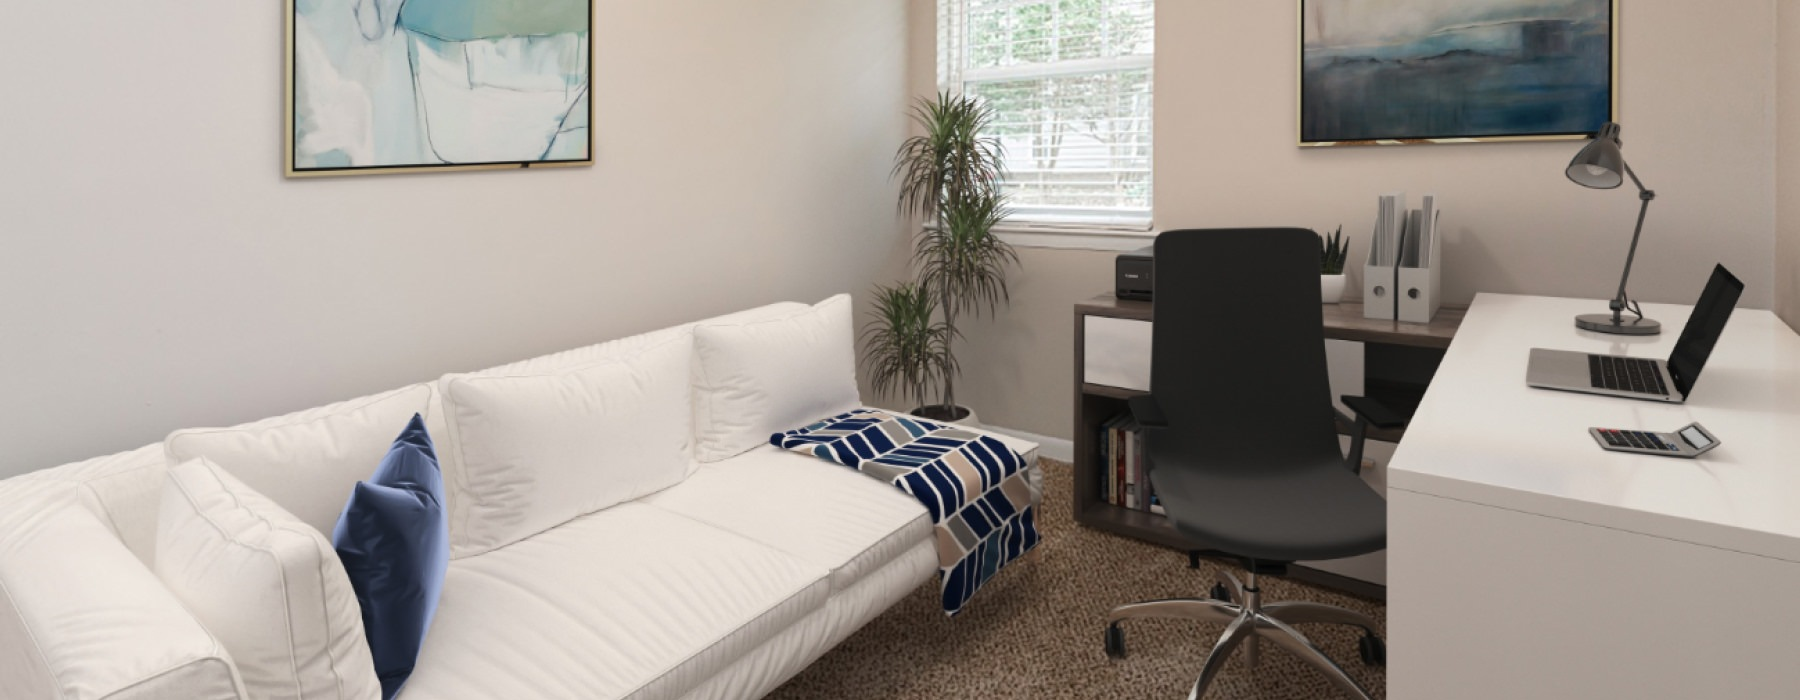 large carpeted bedroom